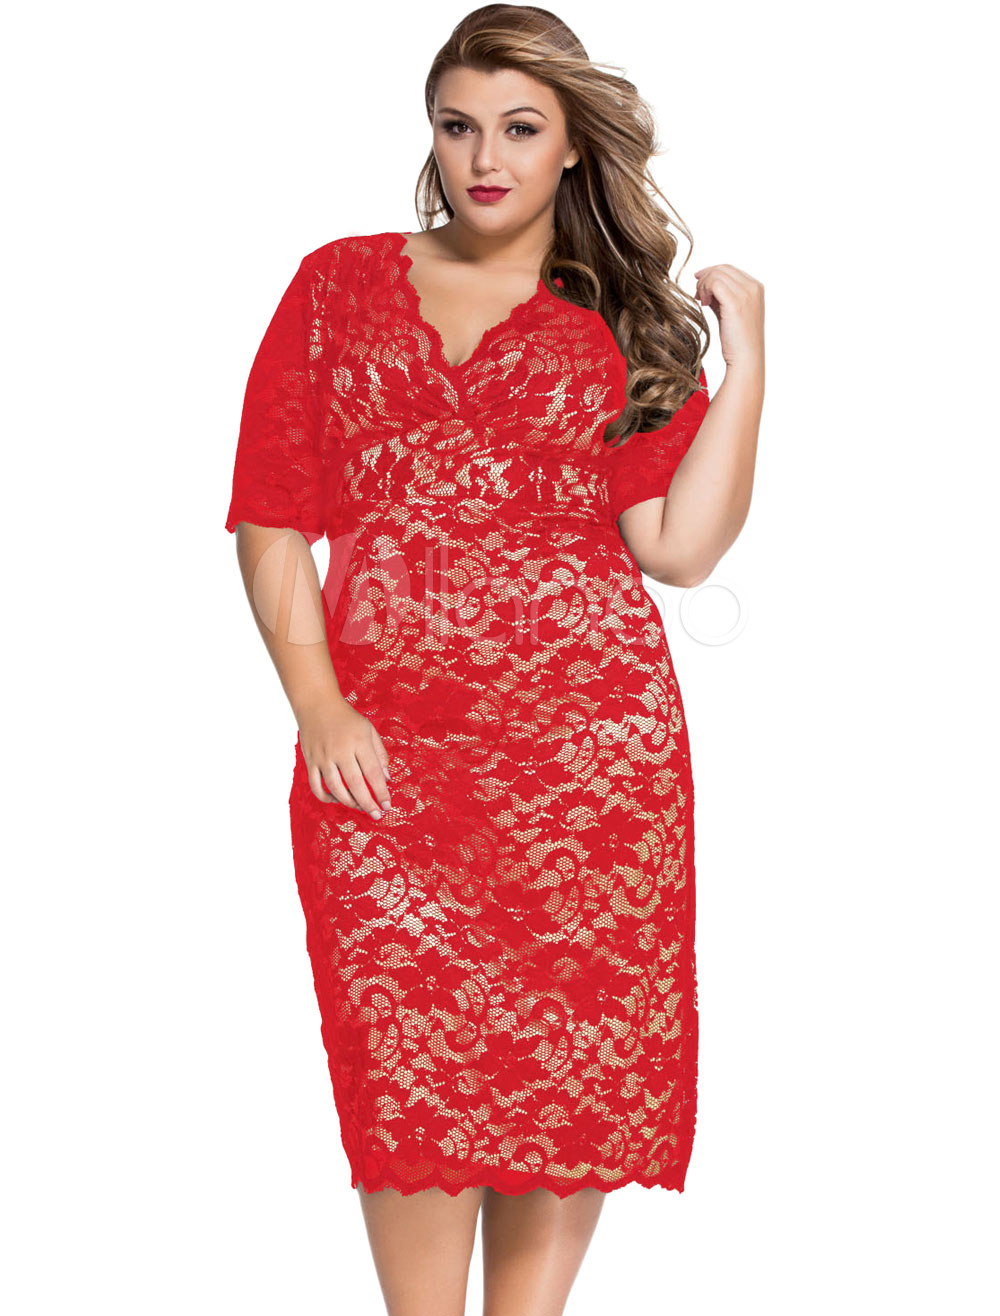 Buy Red Plus Size Dress Lace Midi Knee-Length Dress for $26.34 in Milanoo store